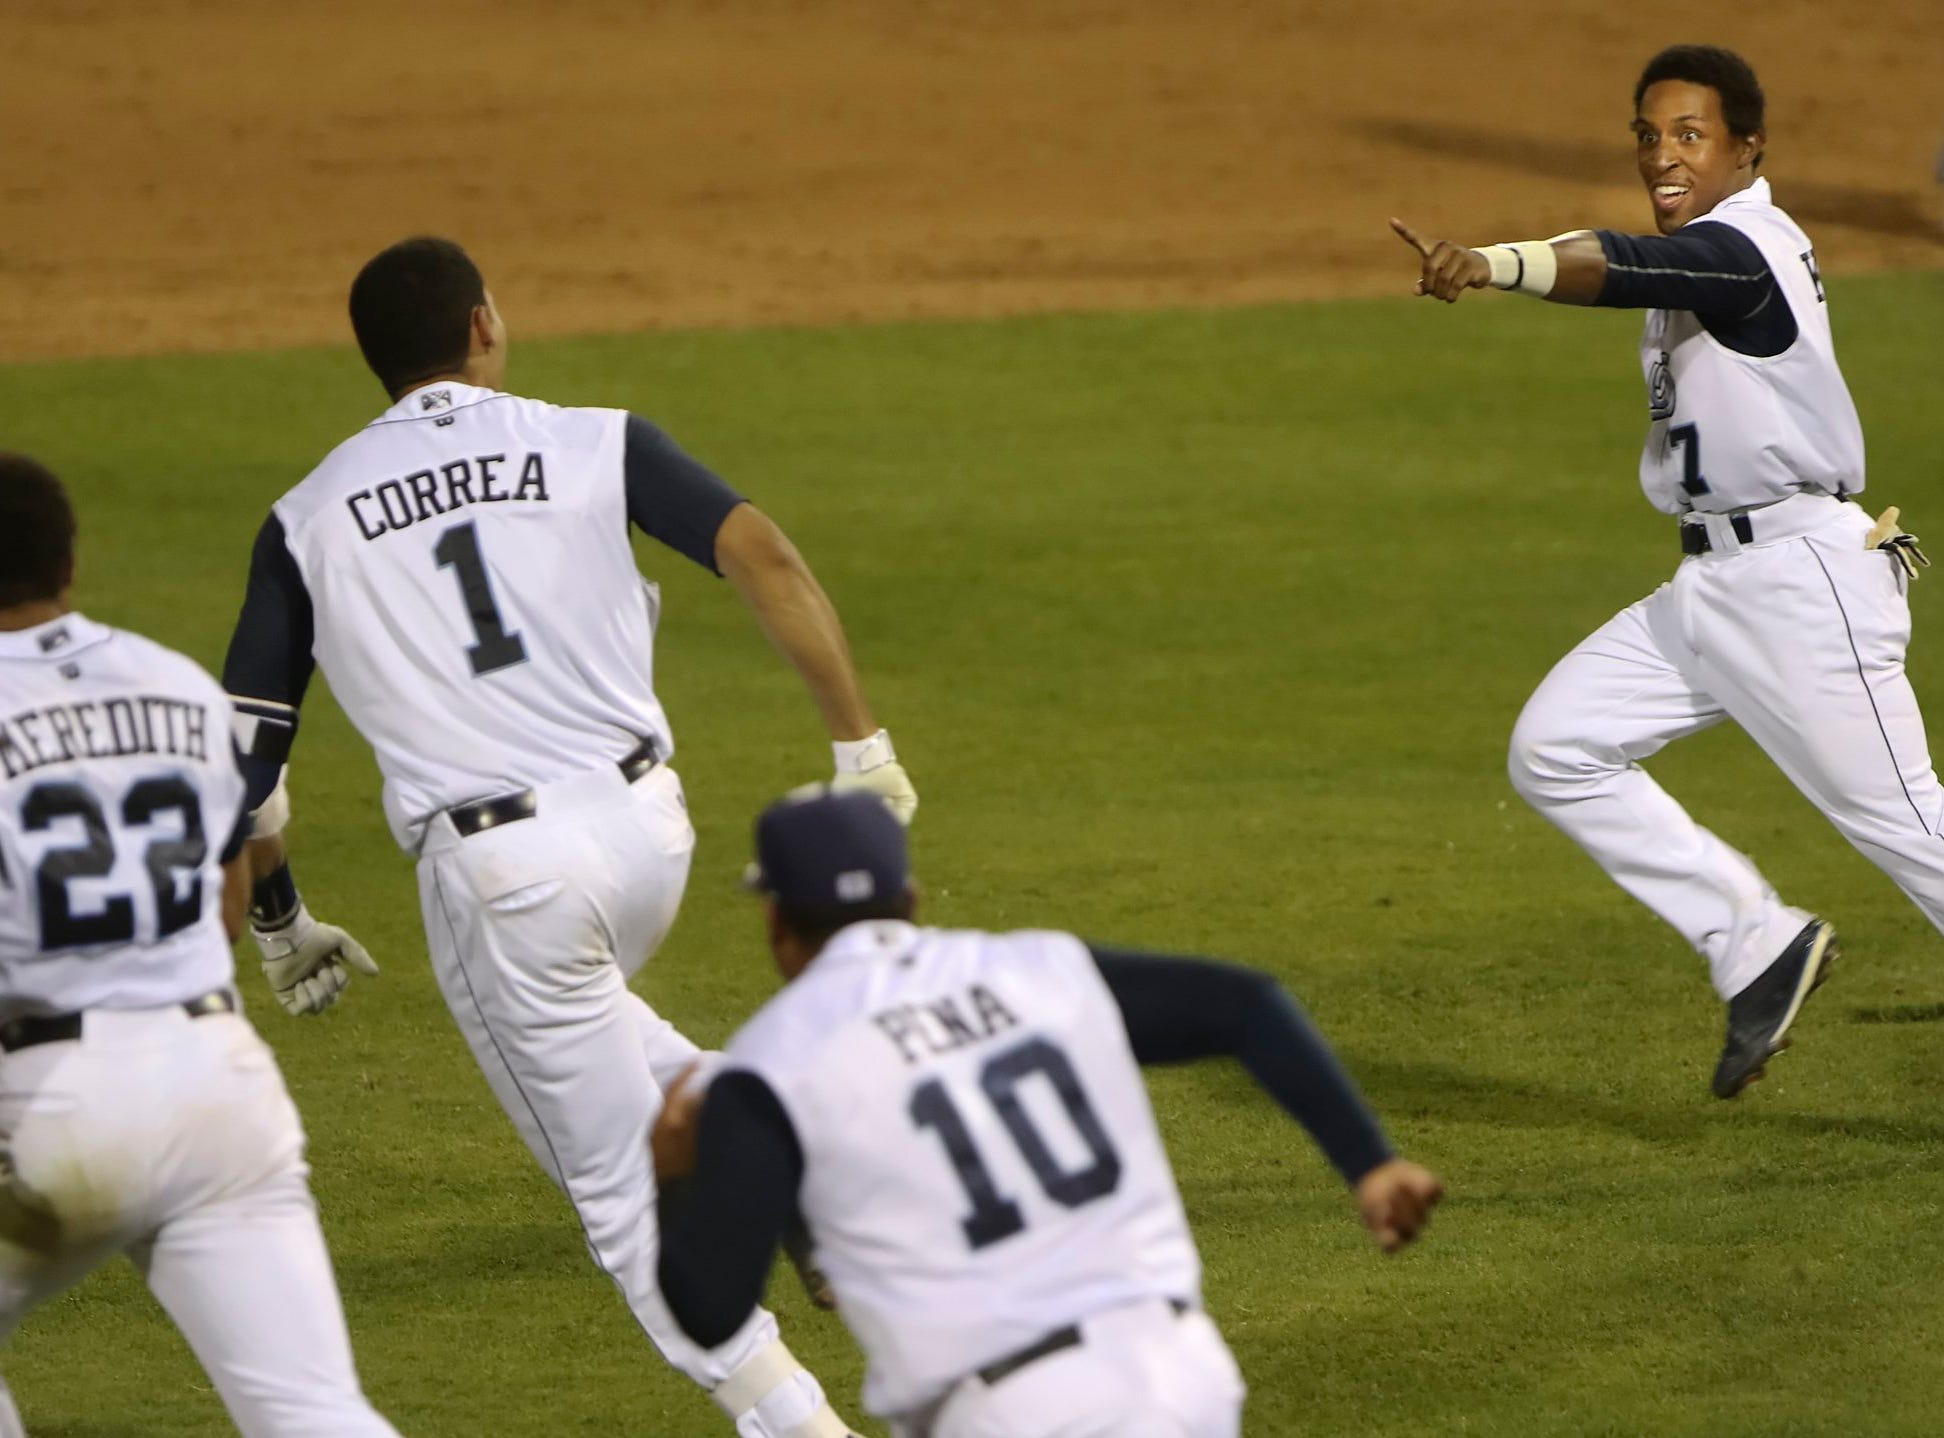 GEORGE TULEY/SPECIAL TO THE CALLER-TIMES Tony Kemp (R), who scored the winning run, points to Carlos Correa (1) whos bases-loaded two-out  Three-RBI double gave the Hooks a walk-off  5-4 win over Frisco at Whataburger Field in Corpus Christi, Monday, May 4, 2015.